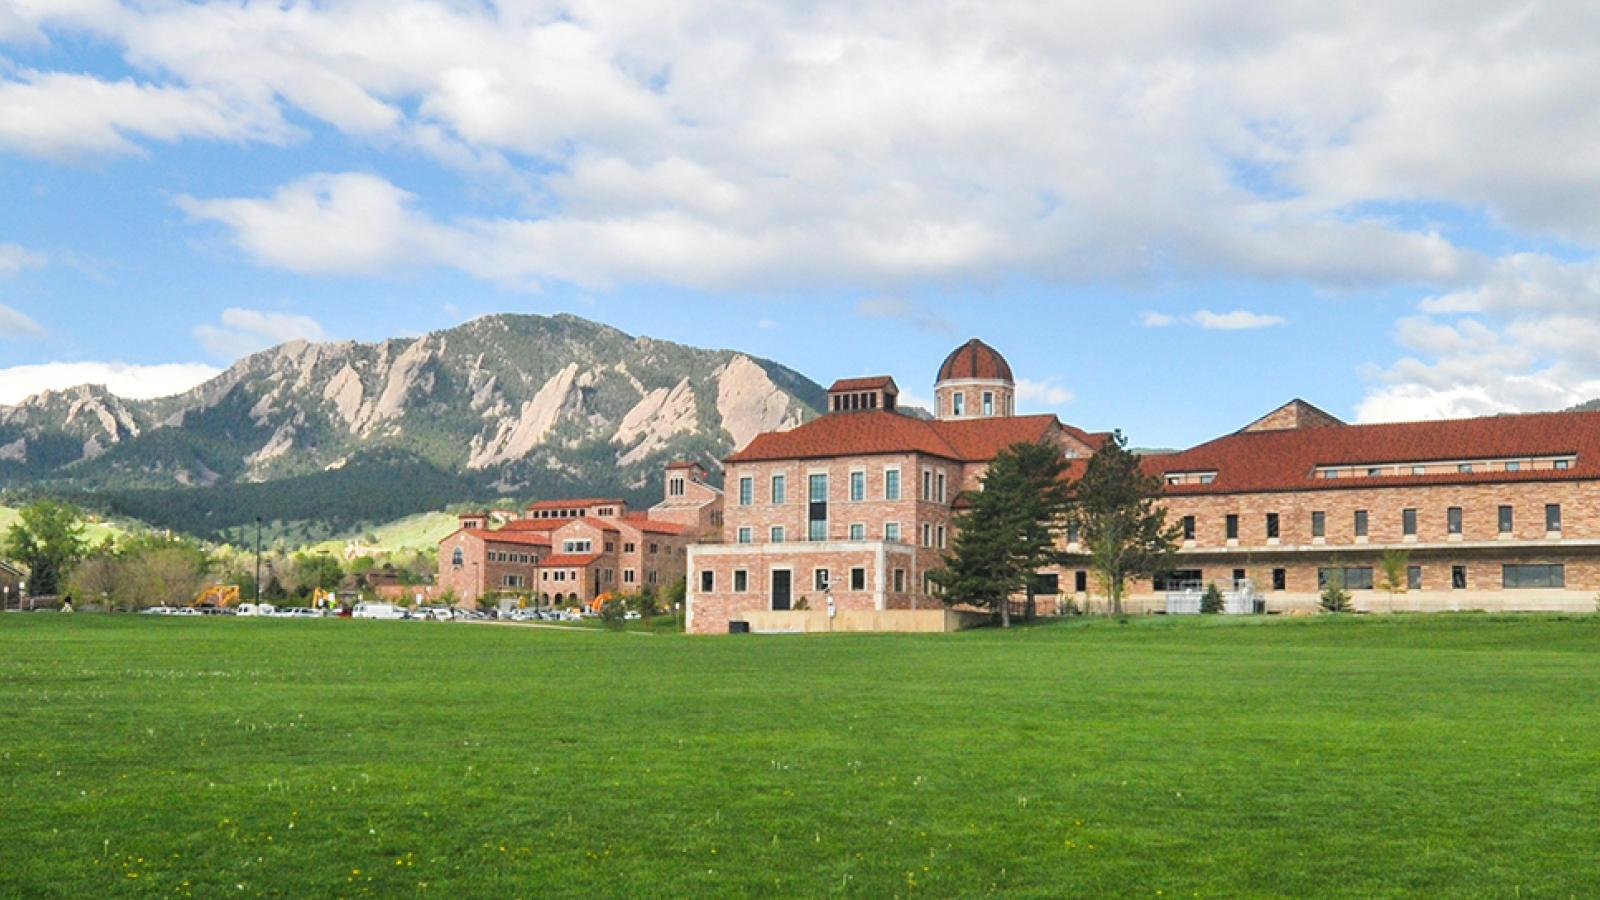 The Koelbel building with the Flatirons in the background